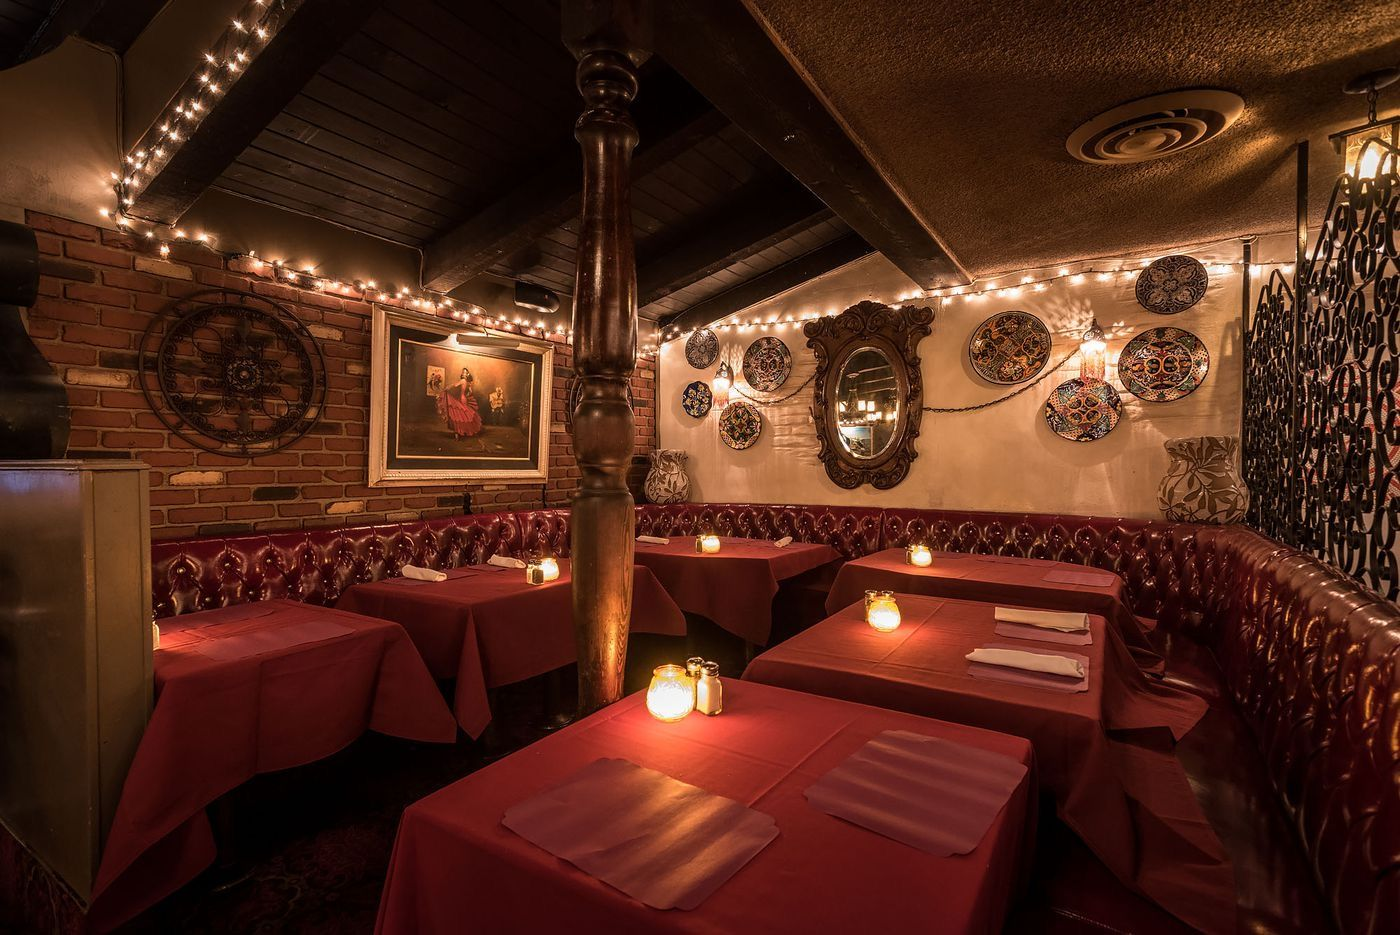 Pin By Cat Smith On Los Angeles Bars And Restaurants In 2020 Los Angeles Bars Los Angeles Restaurant